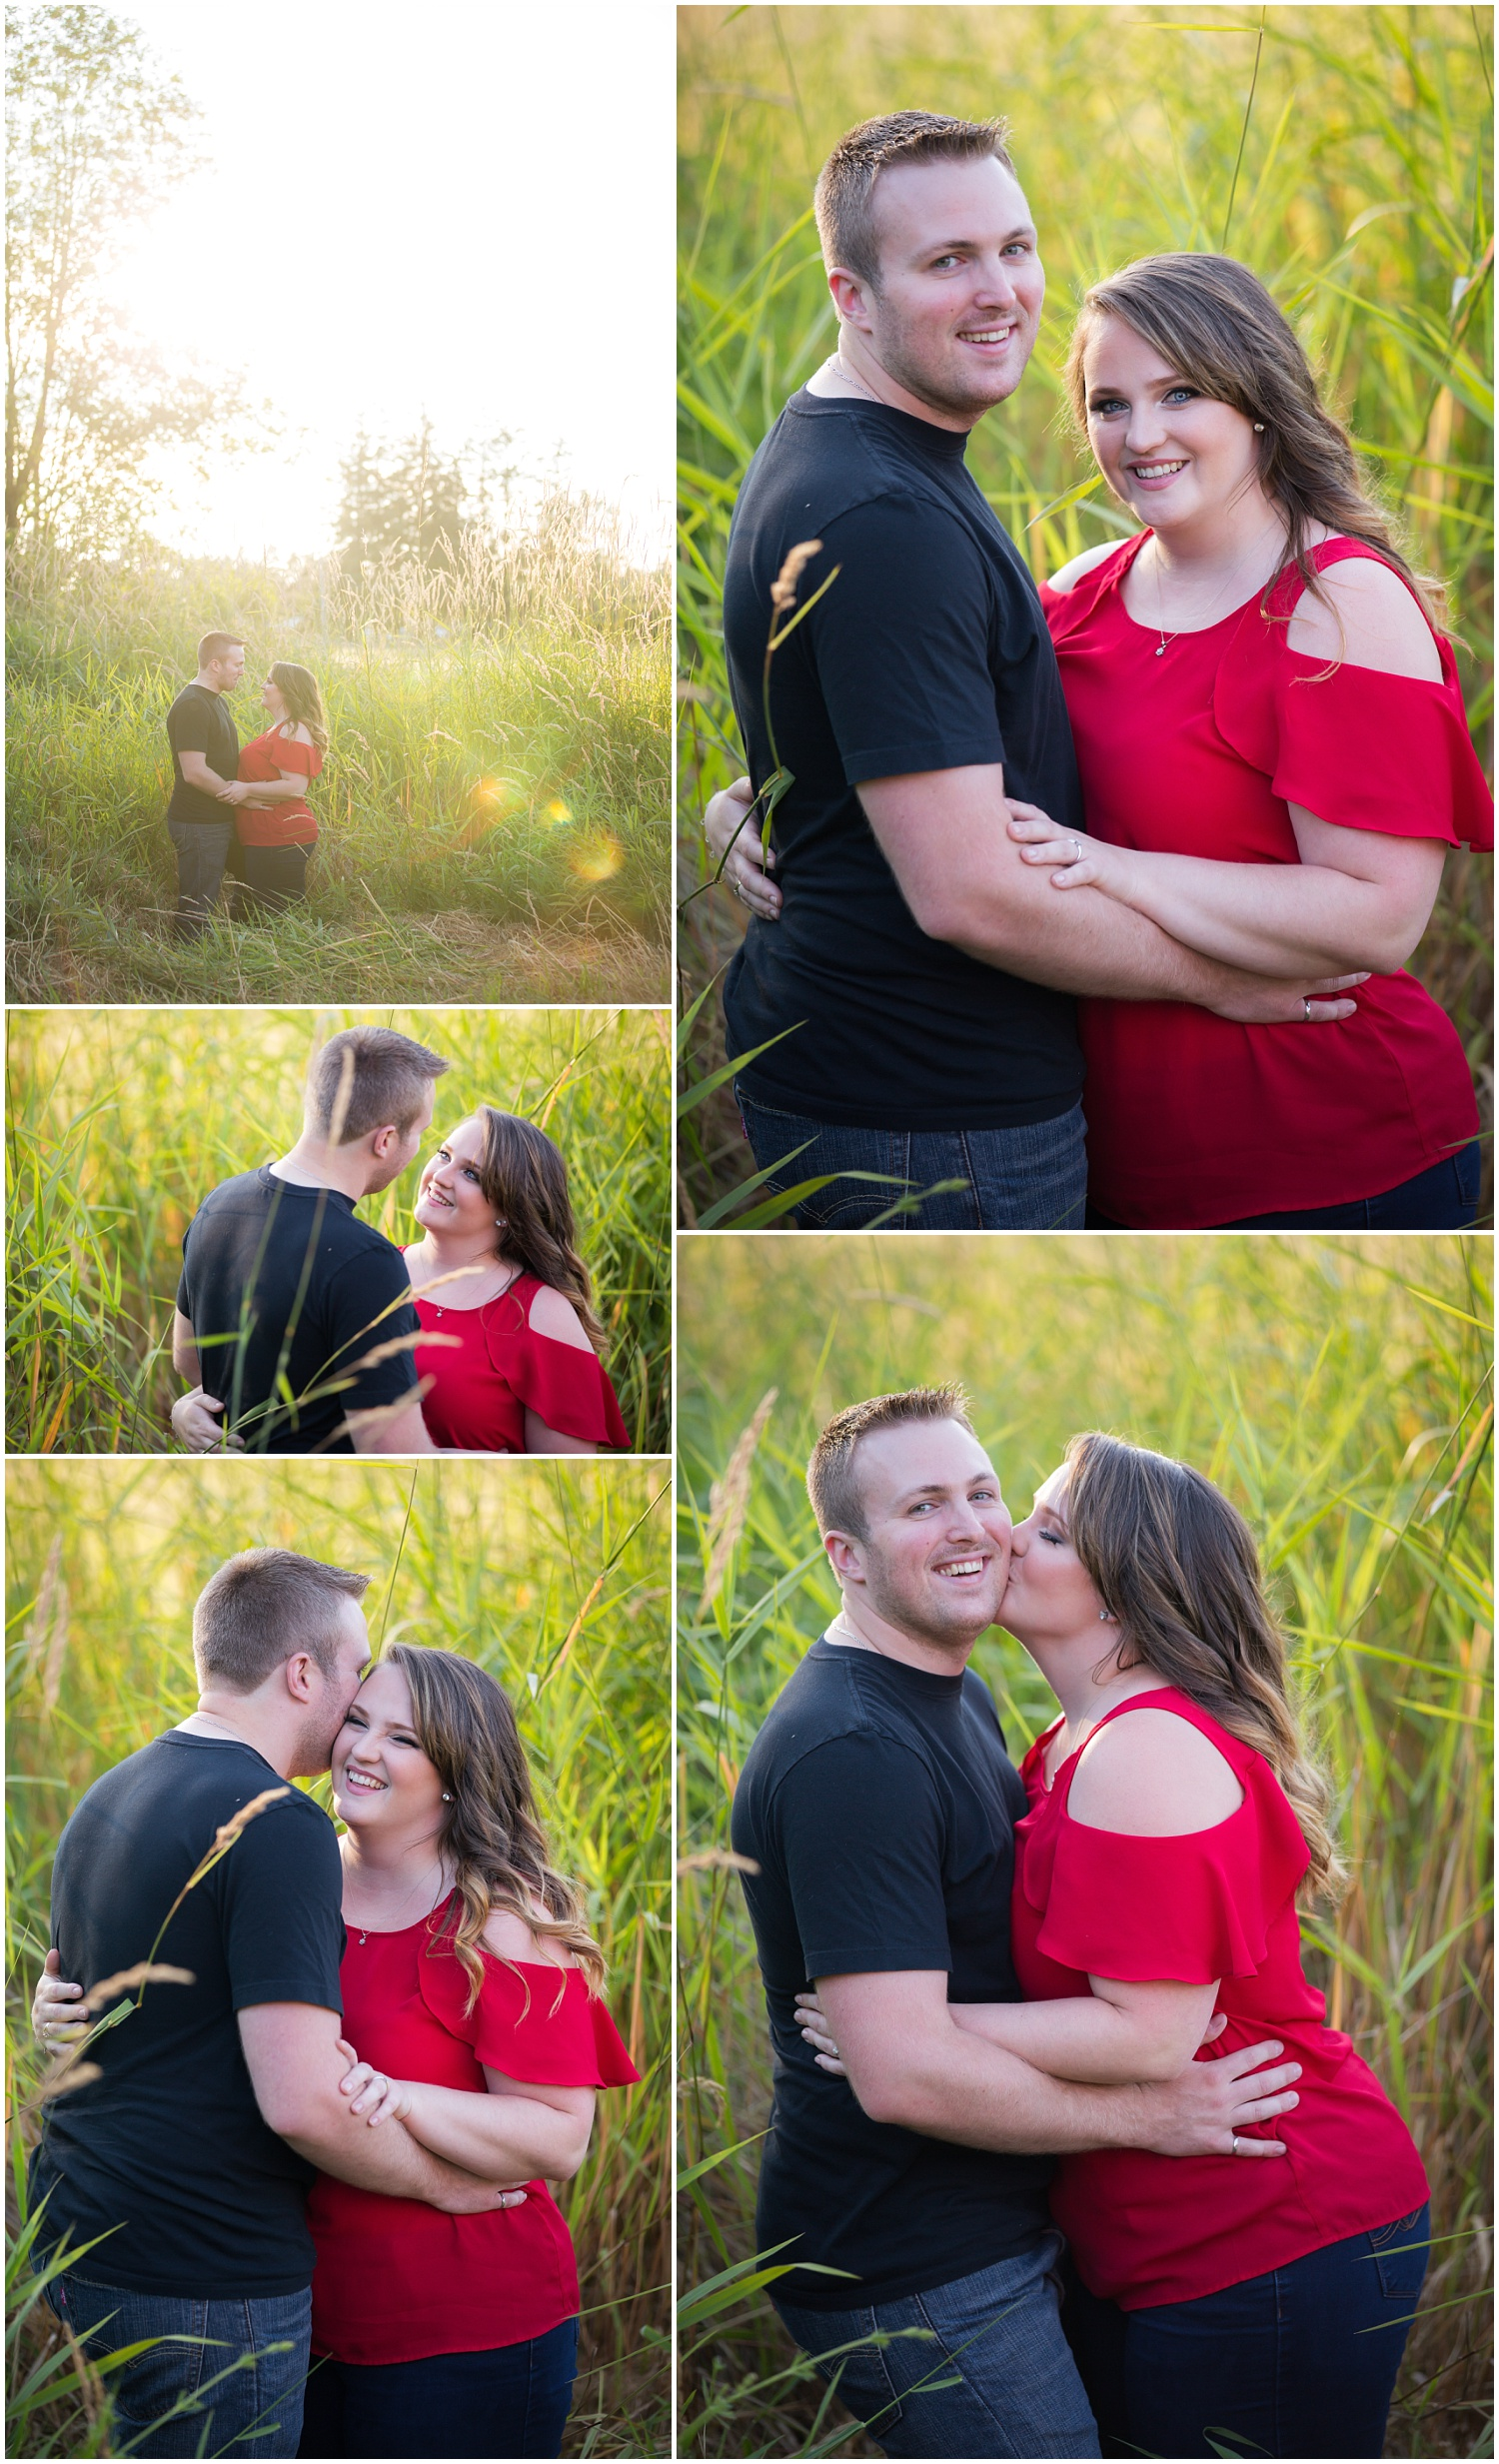 Amazing Day Photography - Langley Engagement Photographer - Compbell Valley Engagement Session (1).jpg